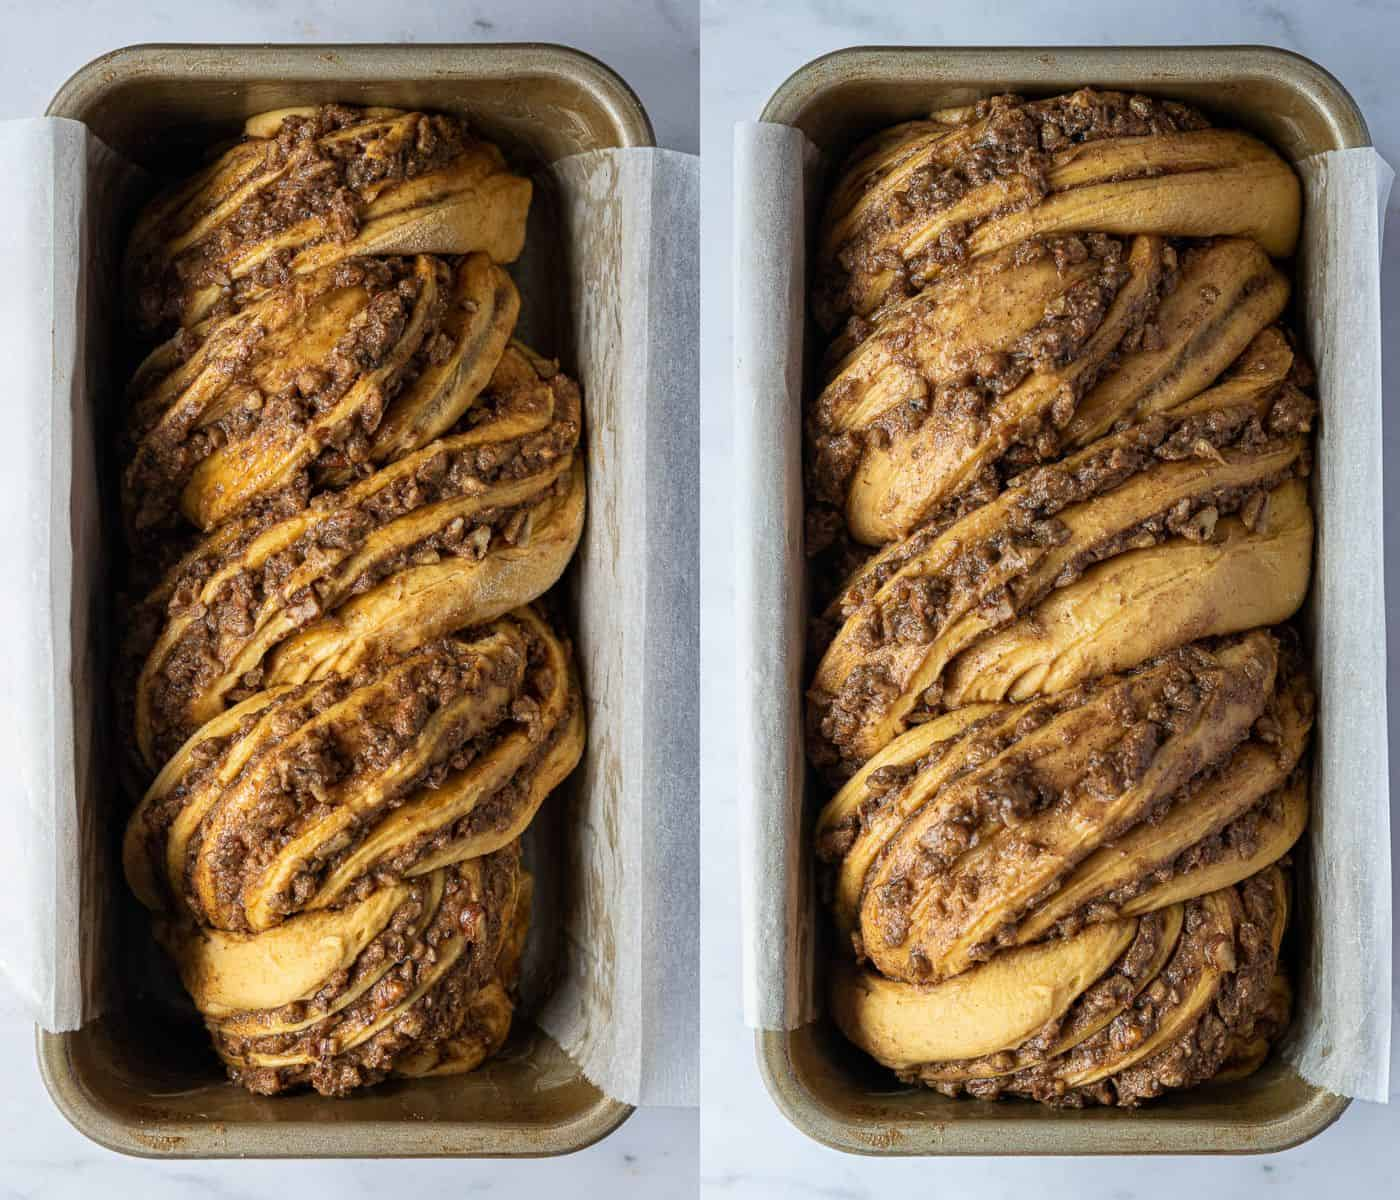 A two image collage of the babka before and after rising.